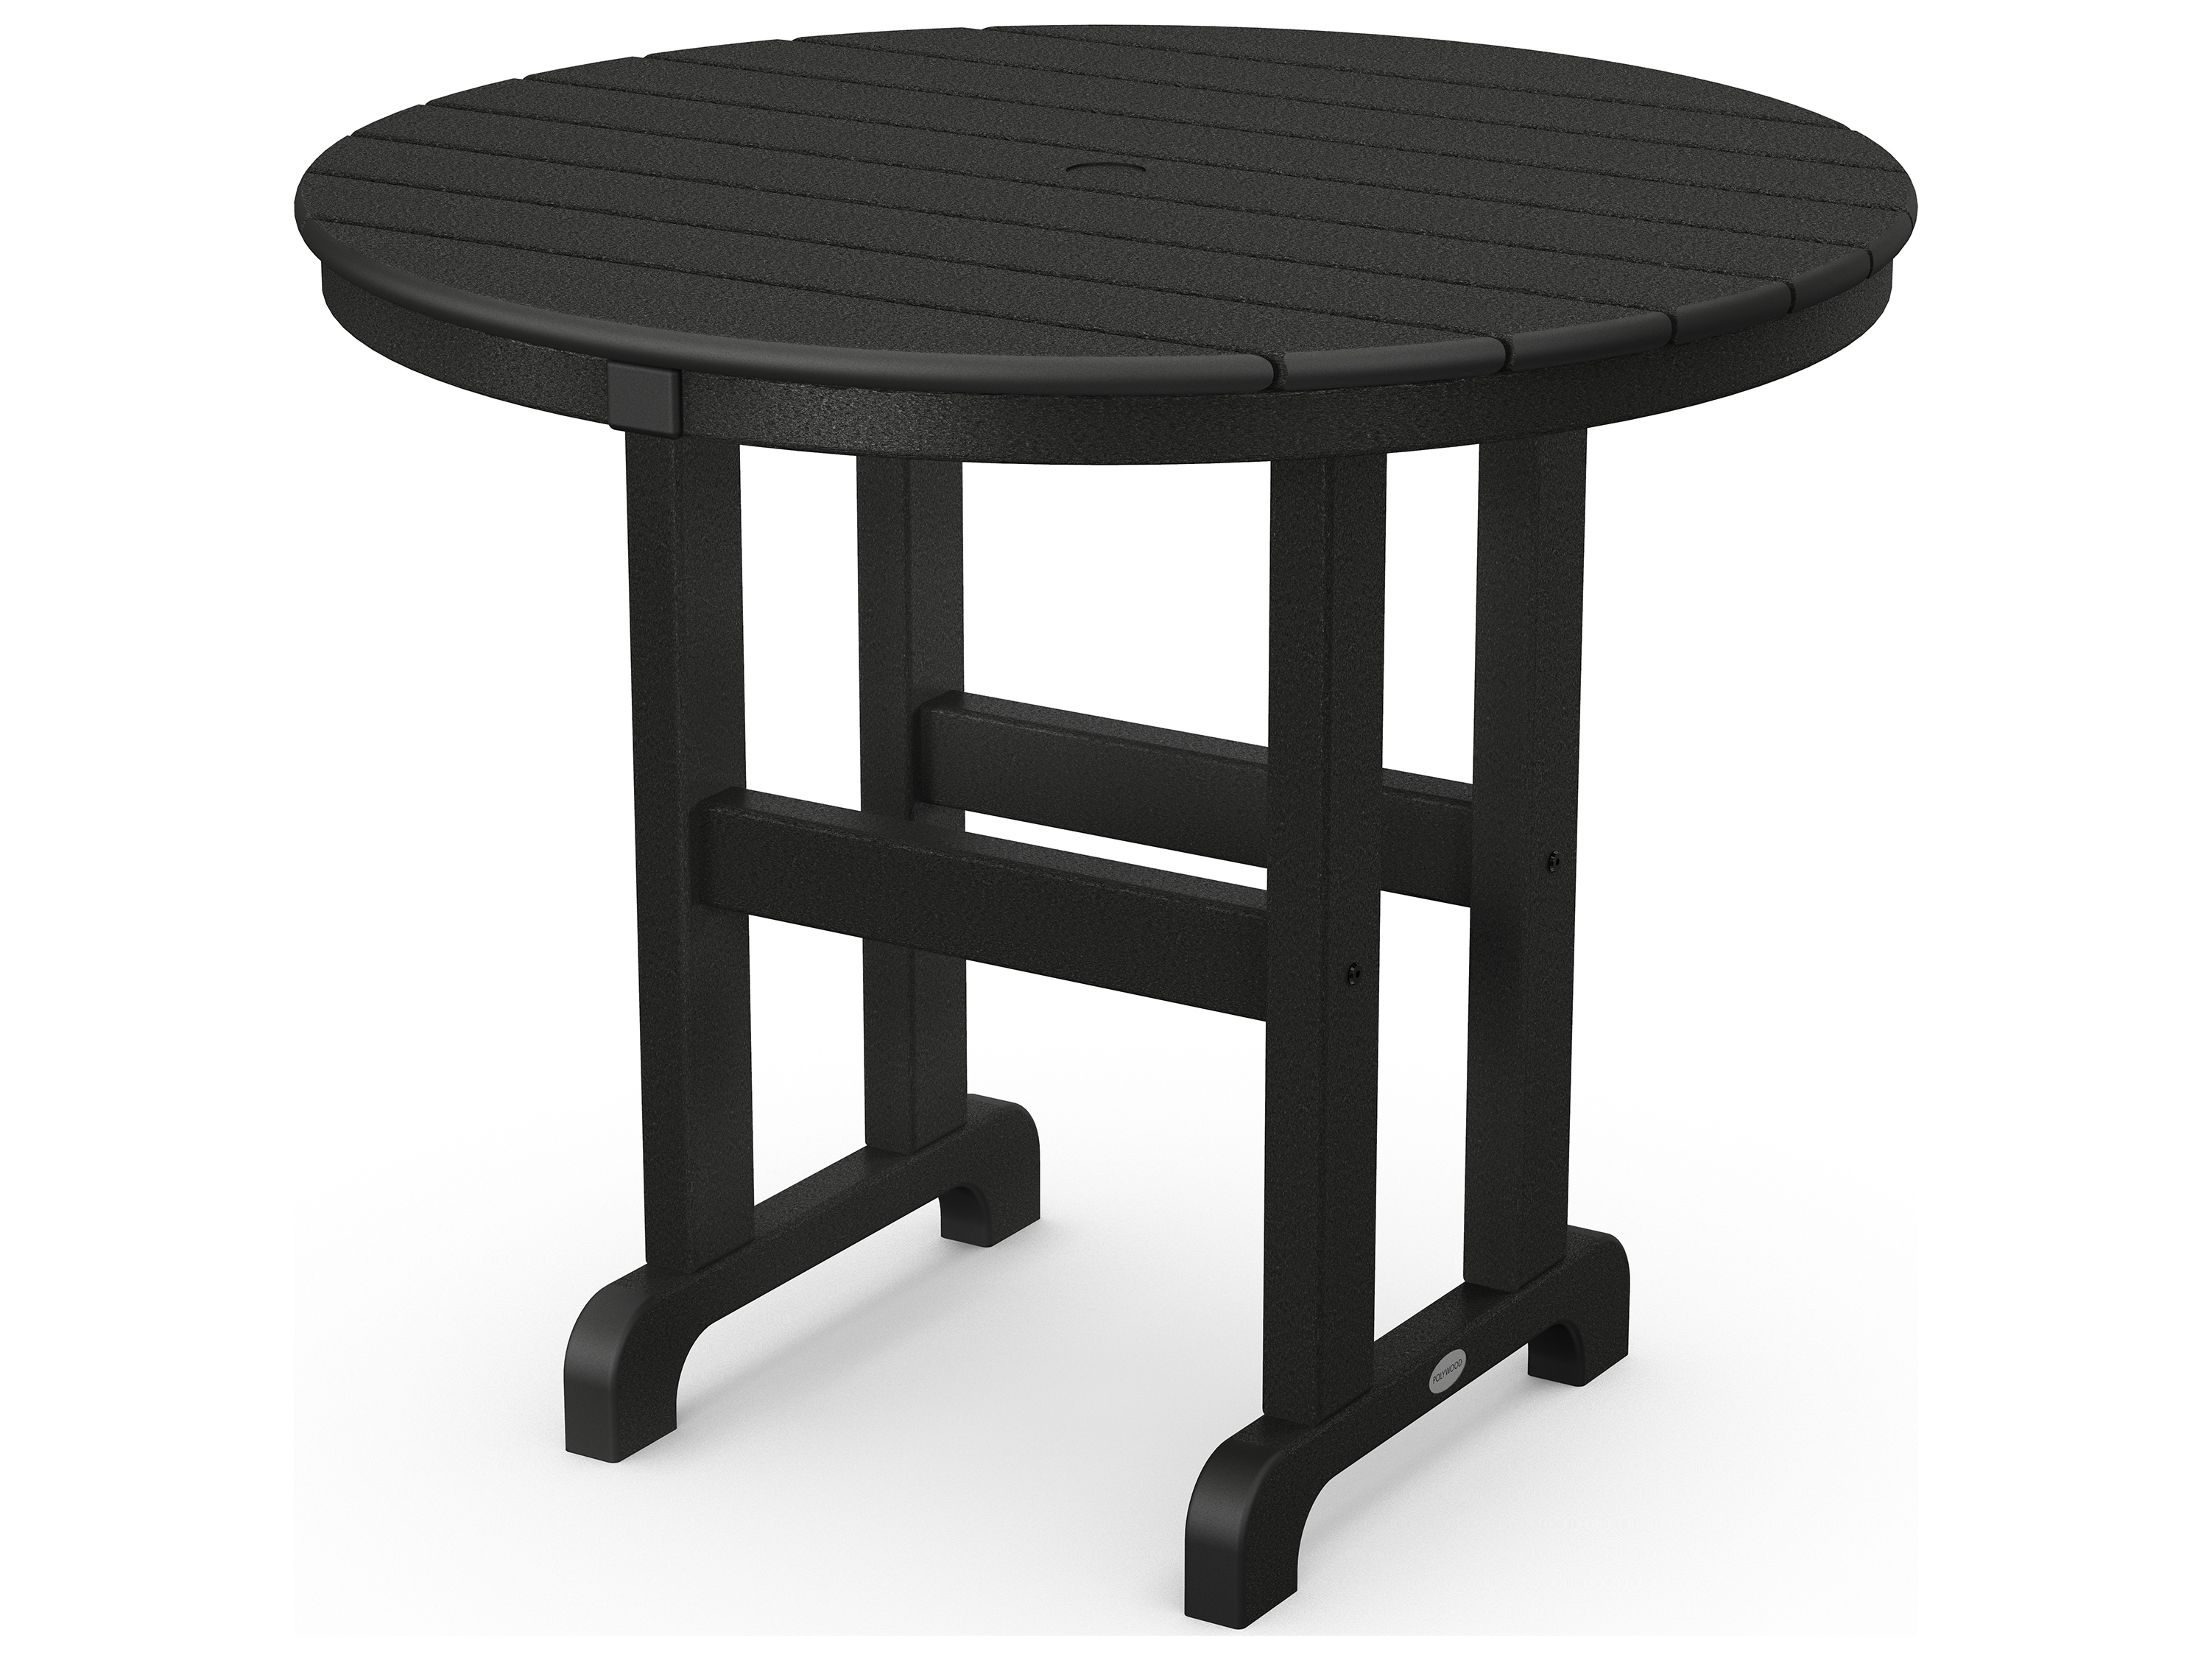 Polywood La Casa Cafe Recycled Plastic 36 Round Dining Table